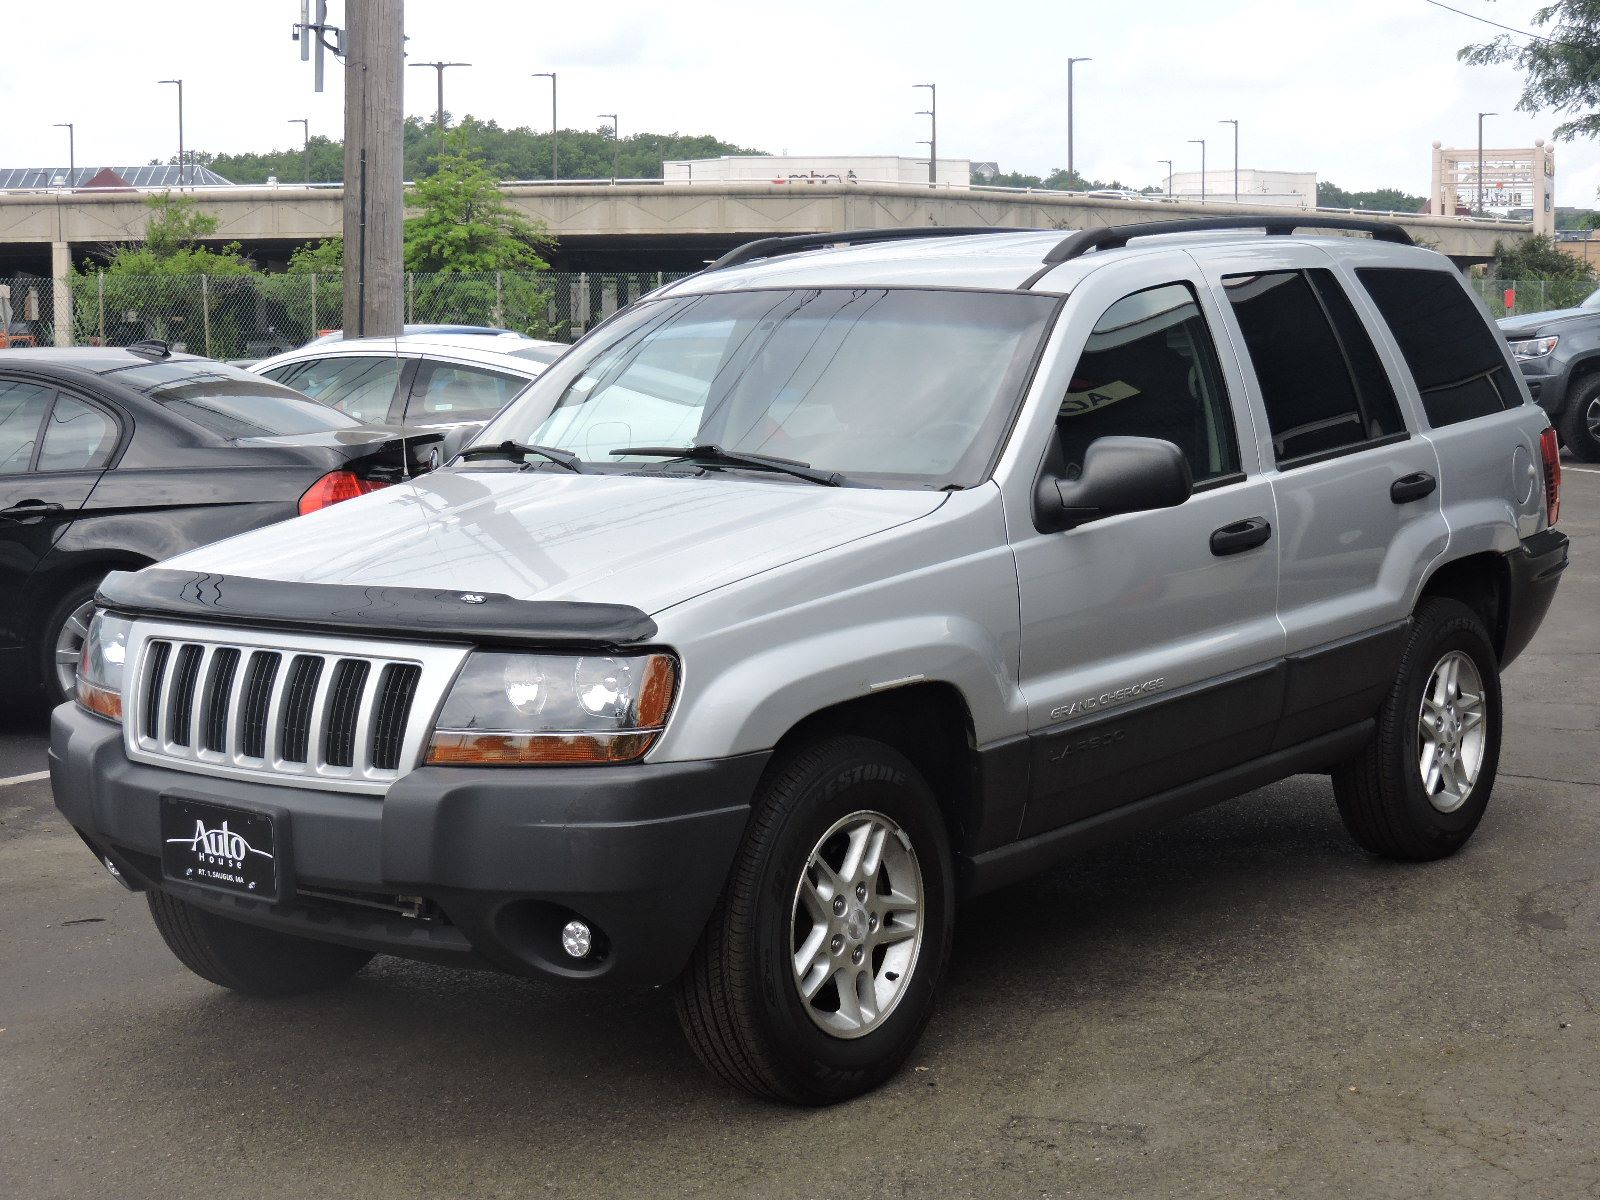 2004 Jeep Grand Cherokee - All Wheel Drive